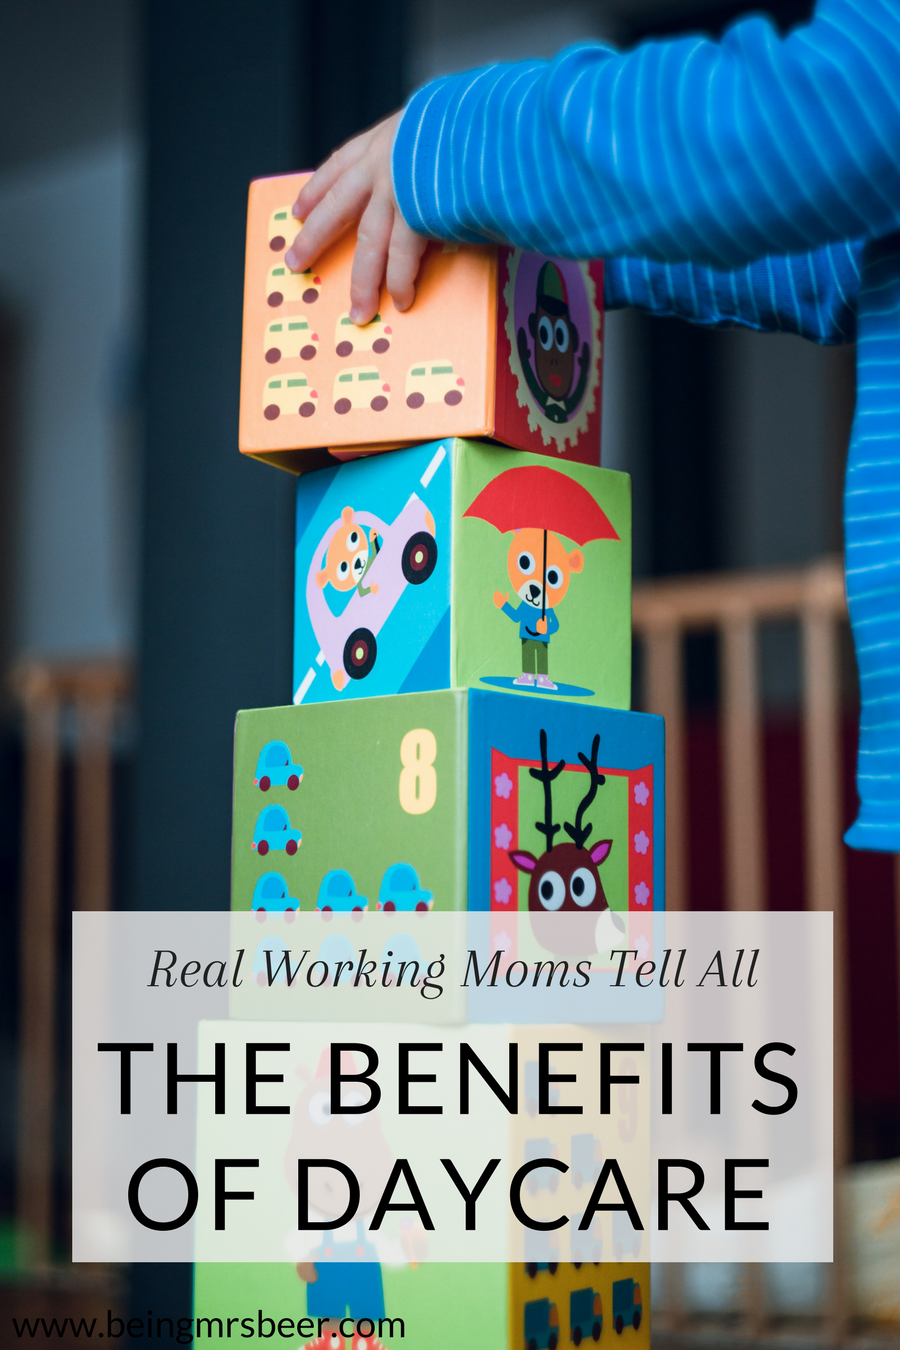 Putting your kids in daycare can be nervewracking - will they be well cared for? Learn a lot? Will they get sick? There are so many questions. Hear from real working moms what their daycare experiences have been like!